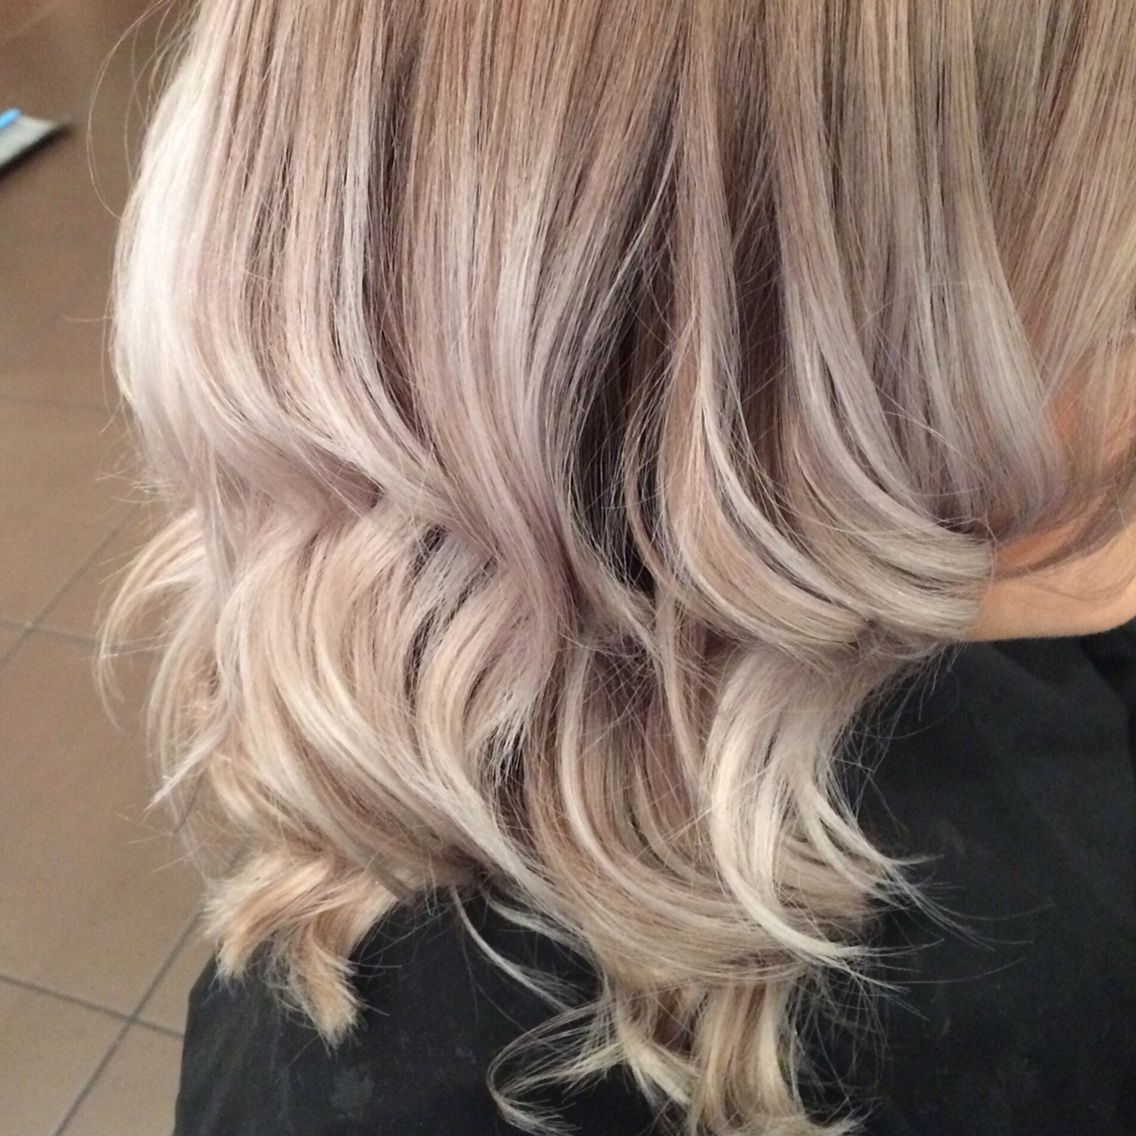 Perfect ash blonde no filter needed by bonny braunack